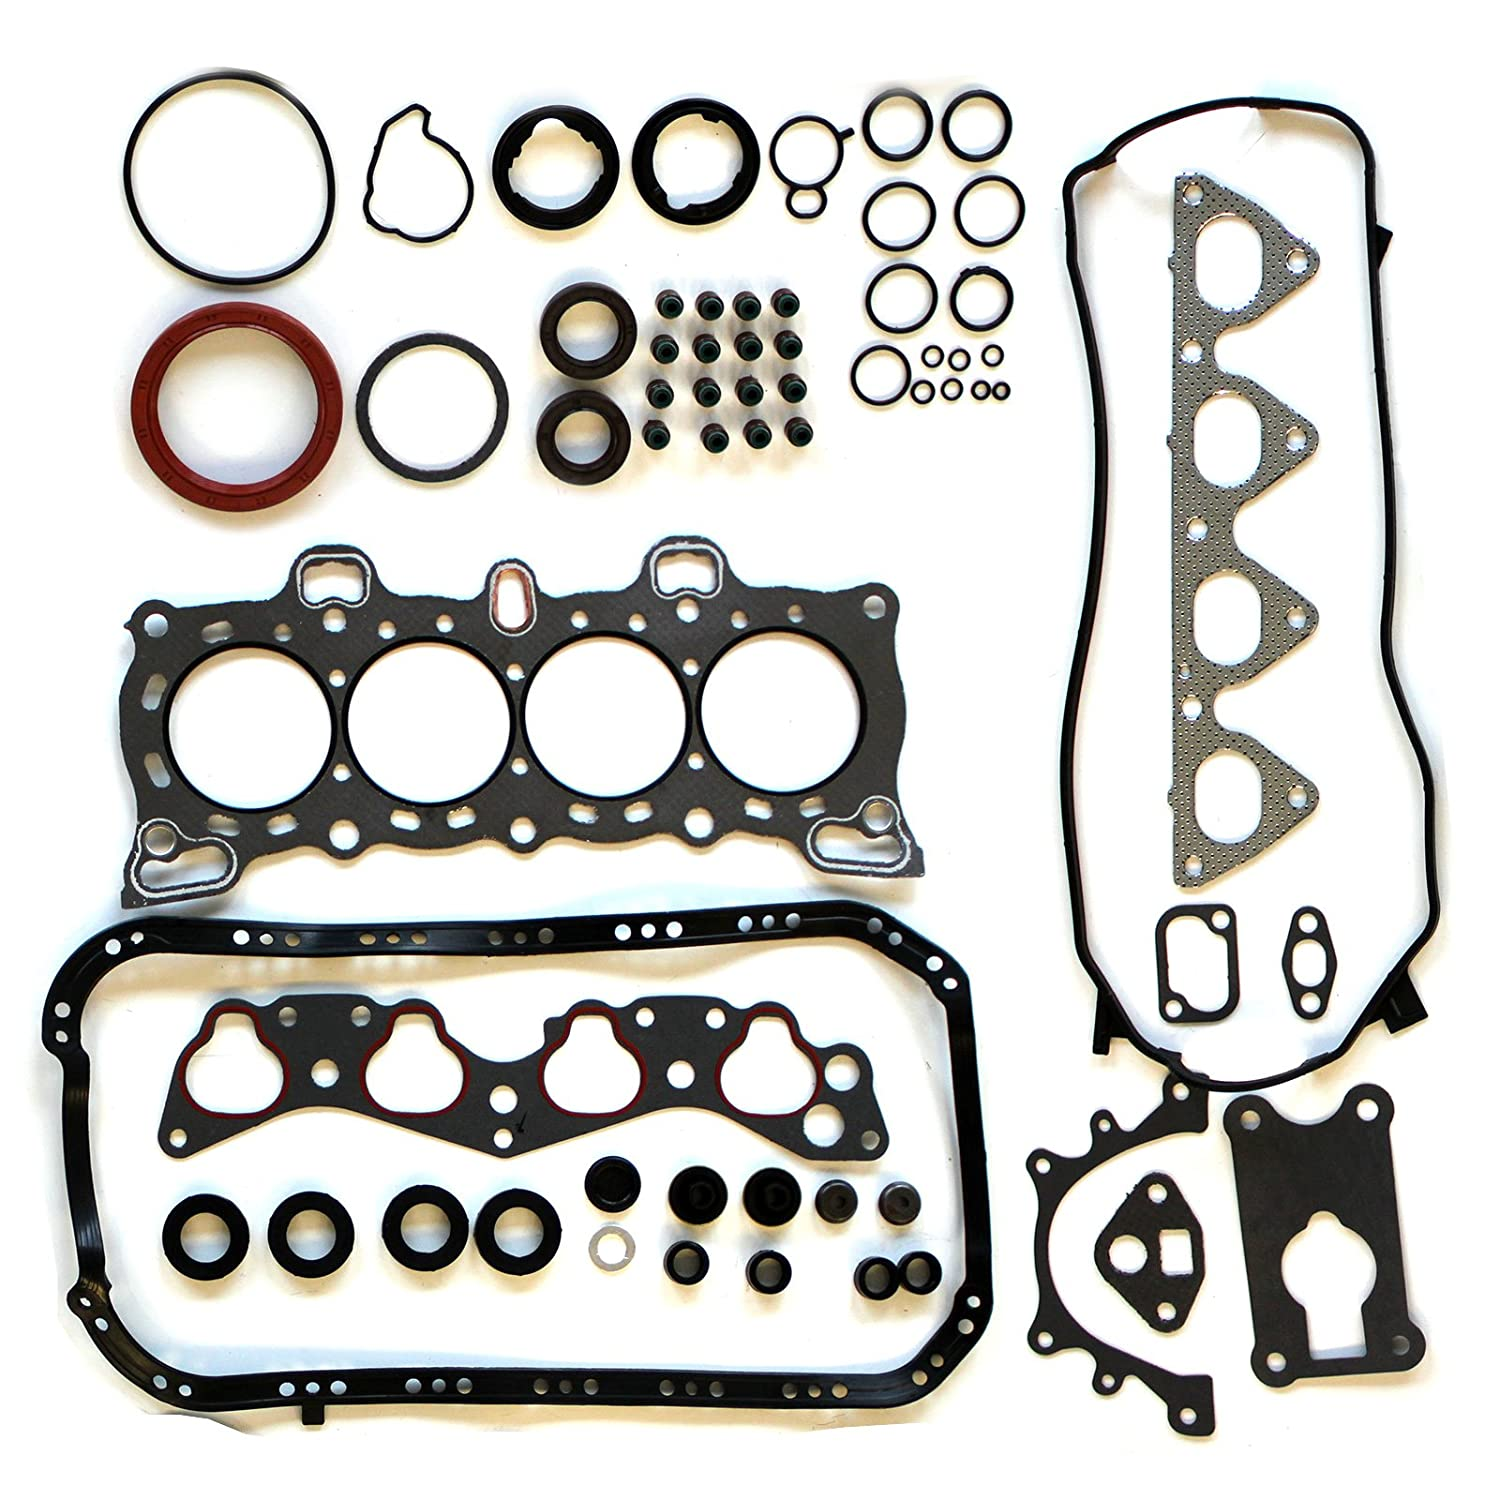 fit 1.5L 1.6L Honda Civic CRX D15B2 D15B7 D15B8 D16A6 1988 /¨C 1995 Engine Head Gaskets Automotive Replacement Gasket Sets SCITOO Compatible with Head Gasket Sets